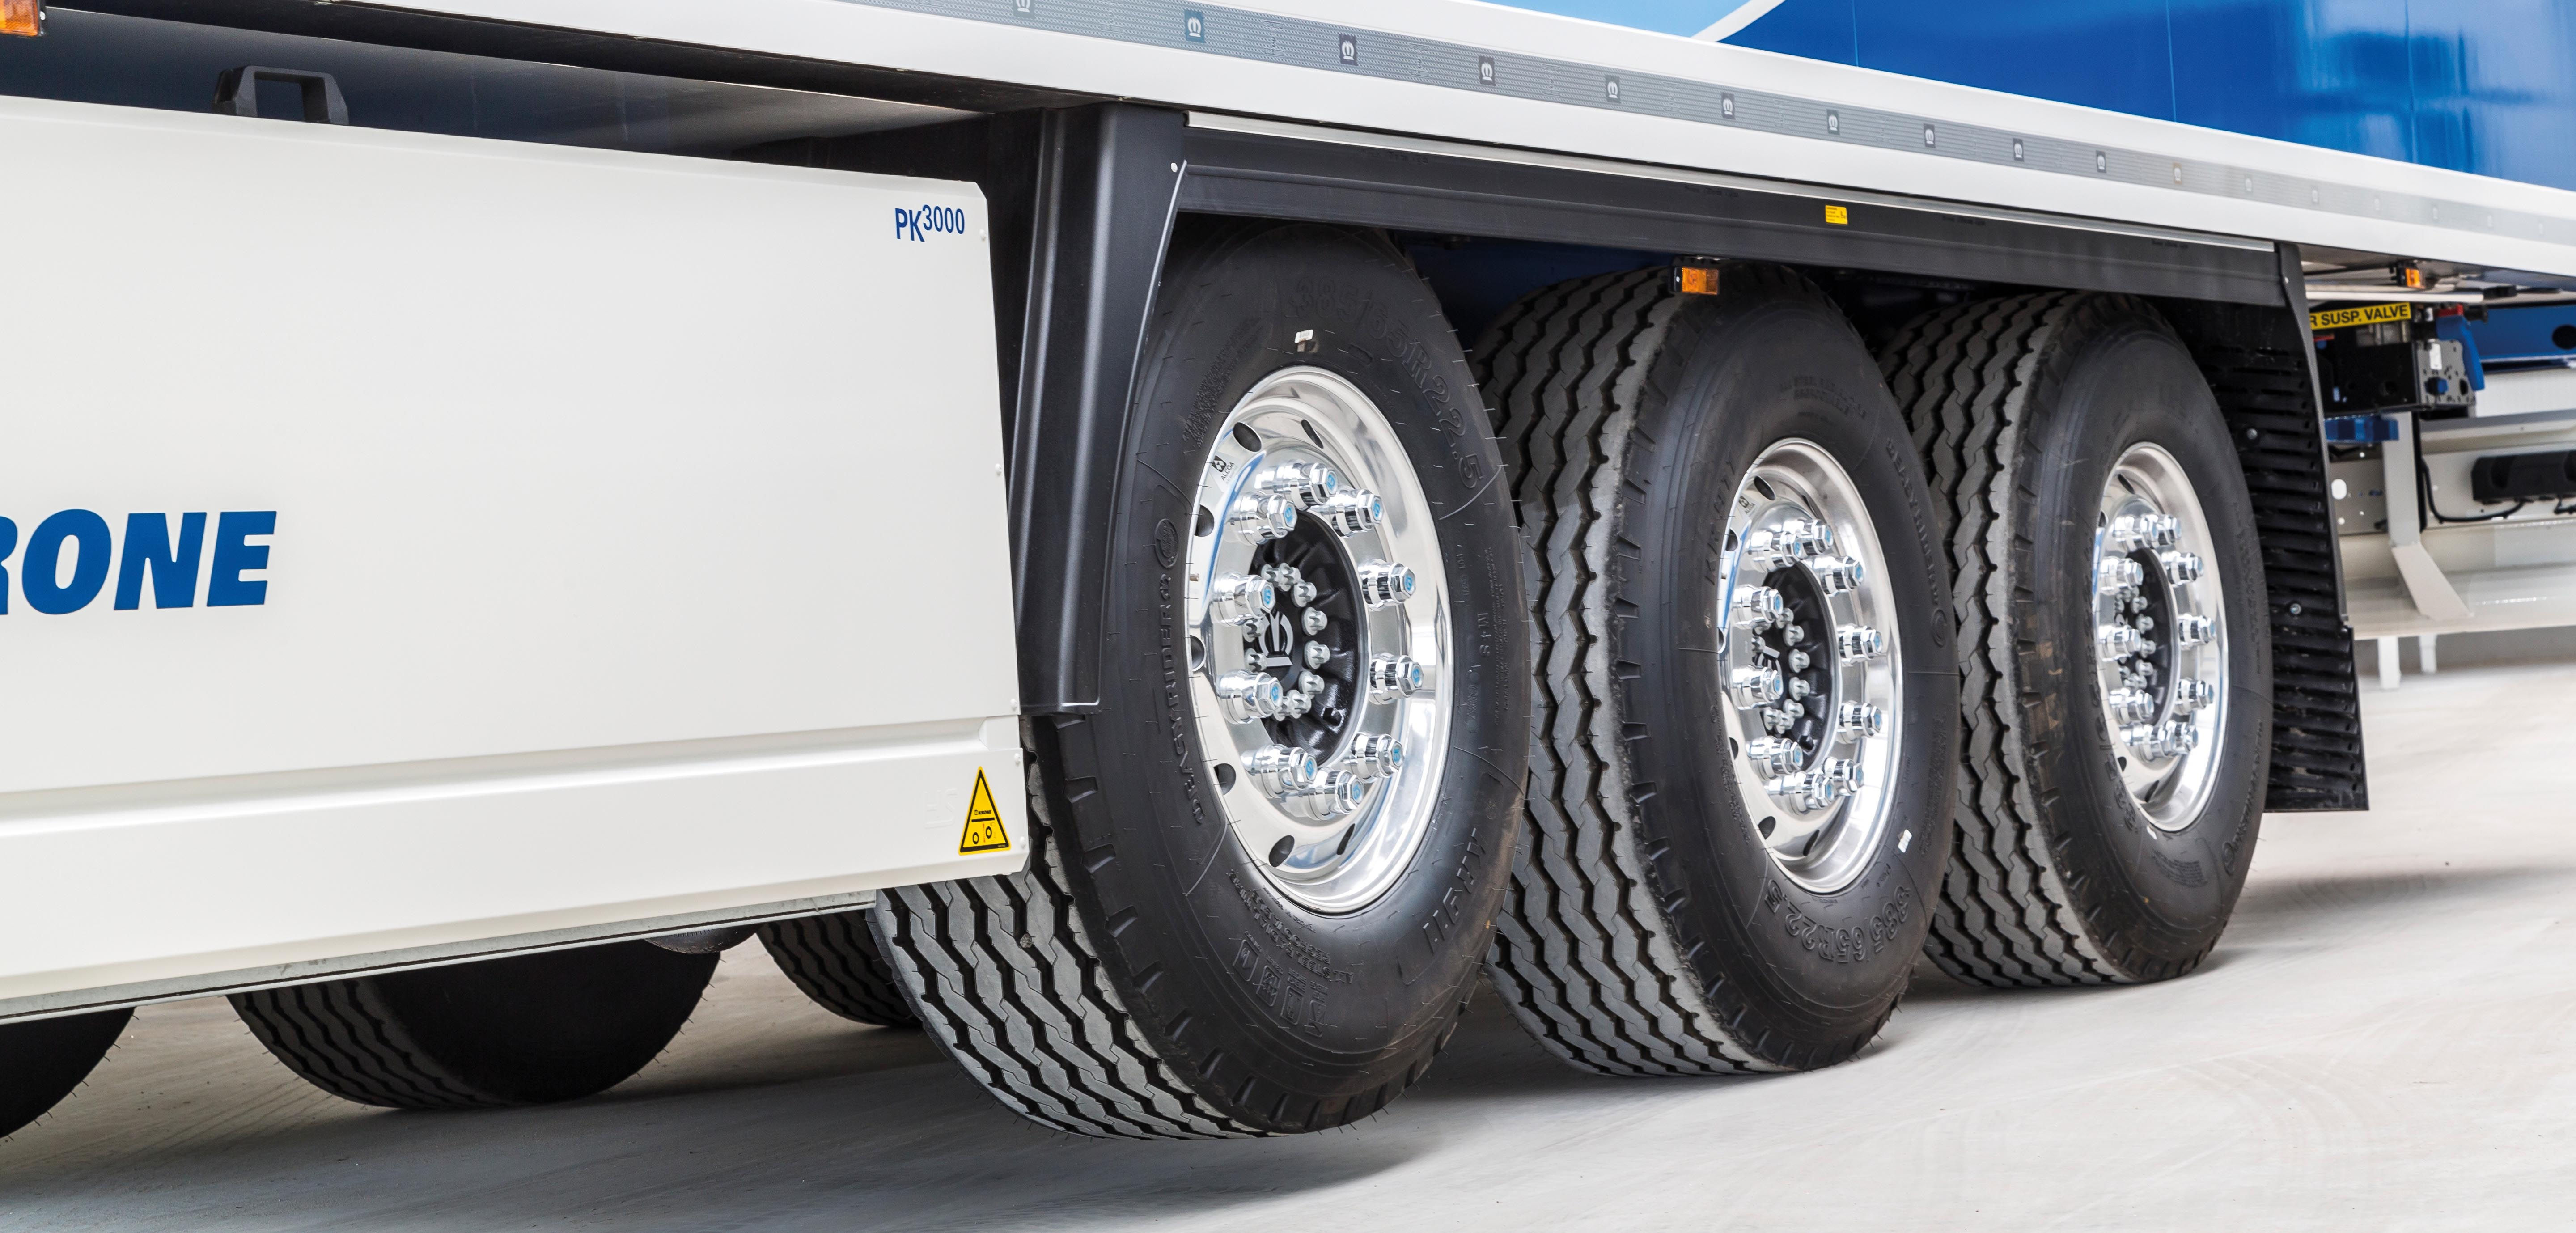 Cool Liner with Krone Trailer Axle